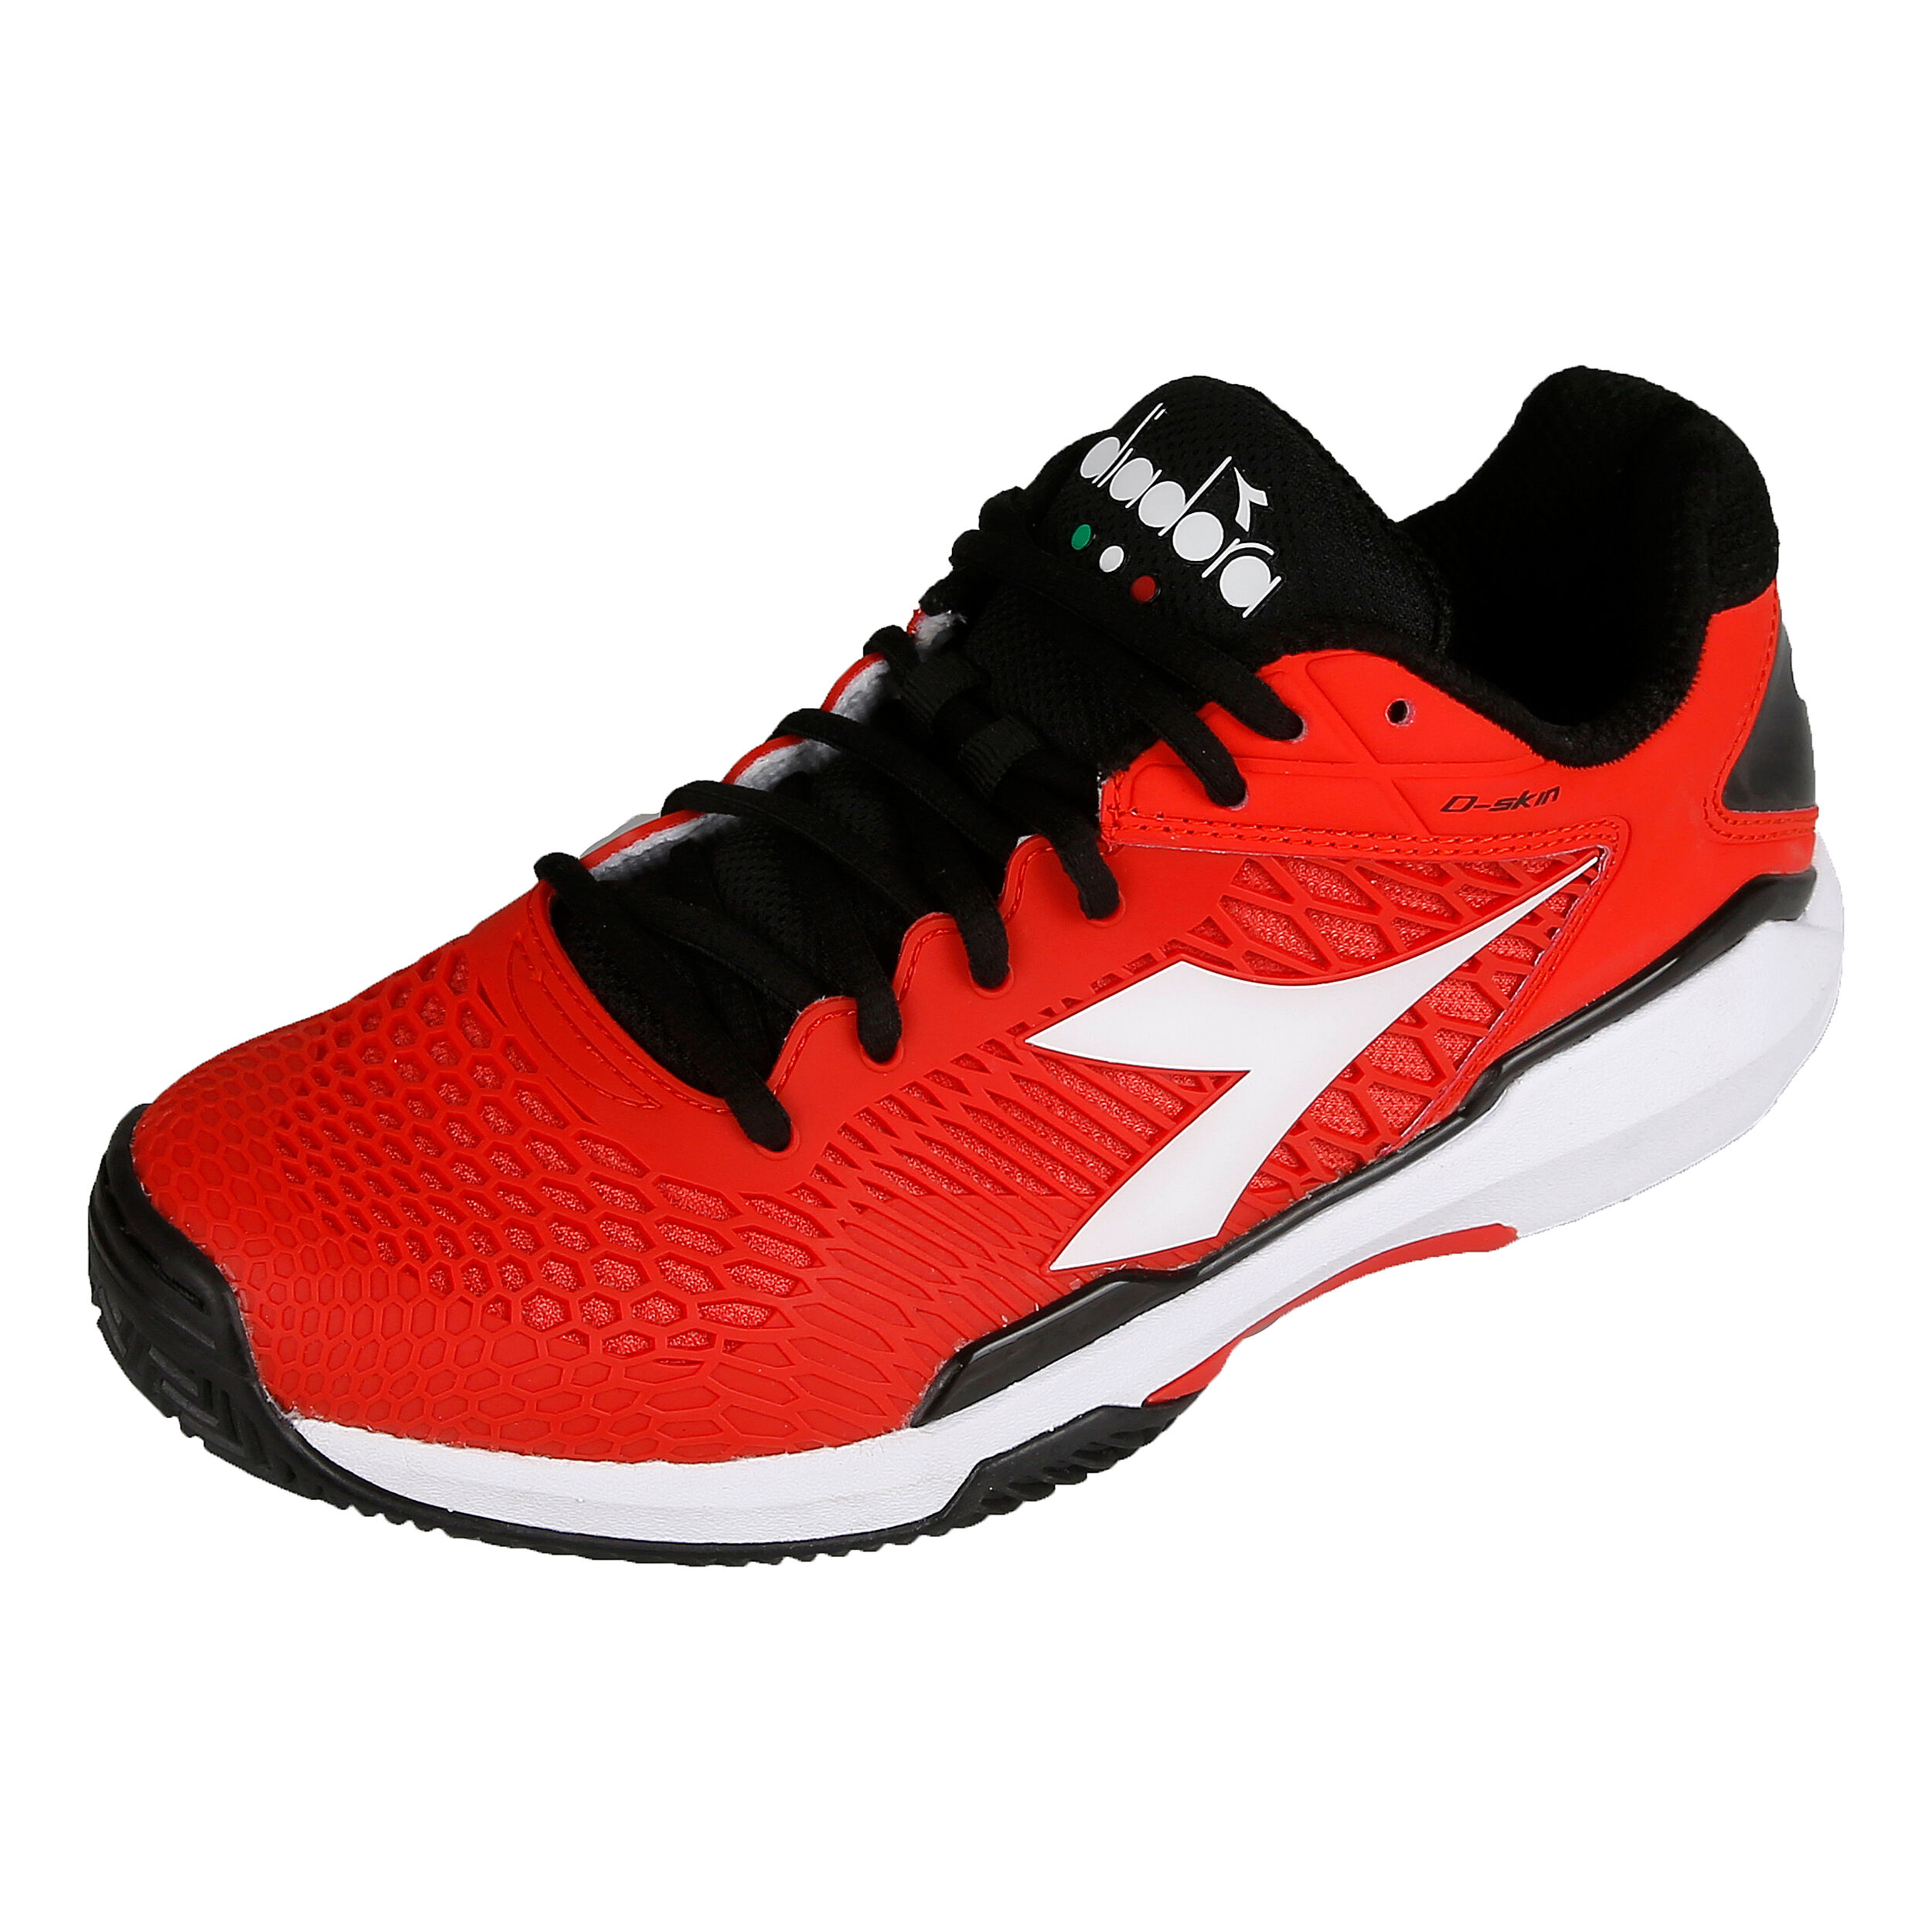 Diadora Speed Competition 5 Clay Scarpa Per Terra Rossa